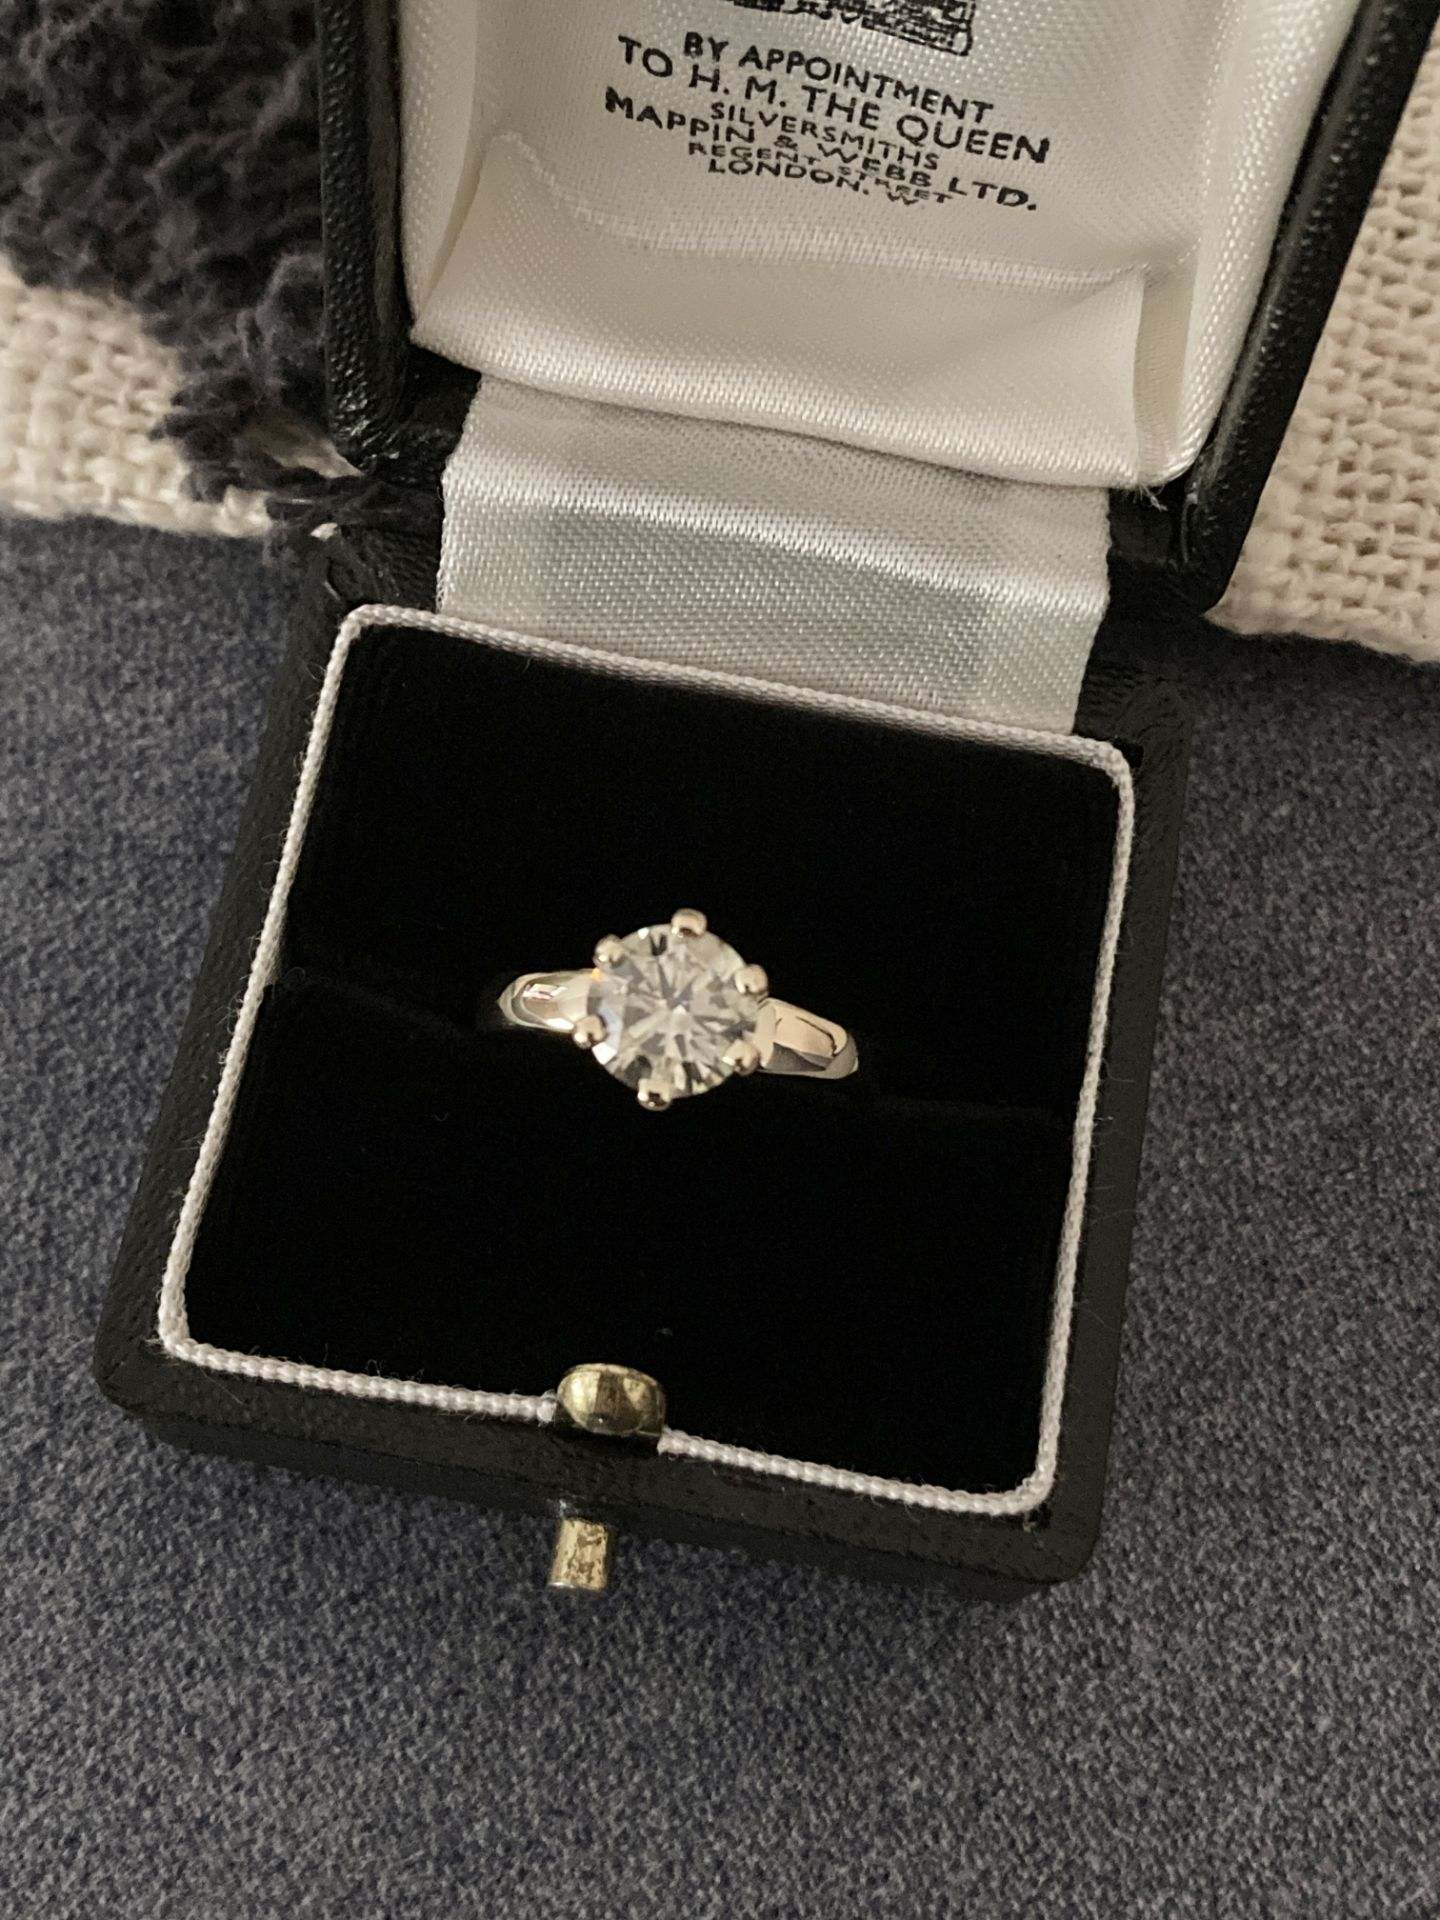 1.54CT DIAMOND SOLITAIRE RING Y. GOLD (ROUND BRILLIANT) - 2012 VALUATION £6,200 INCLUDED - Image 7 of 14